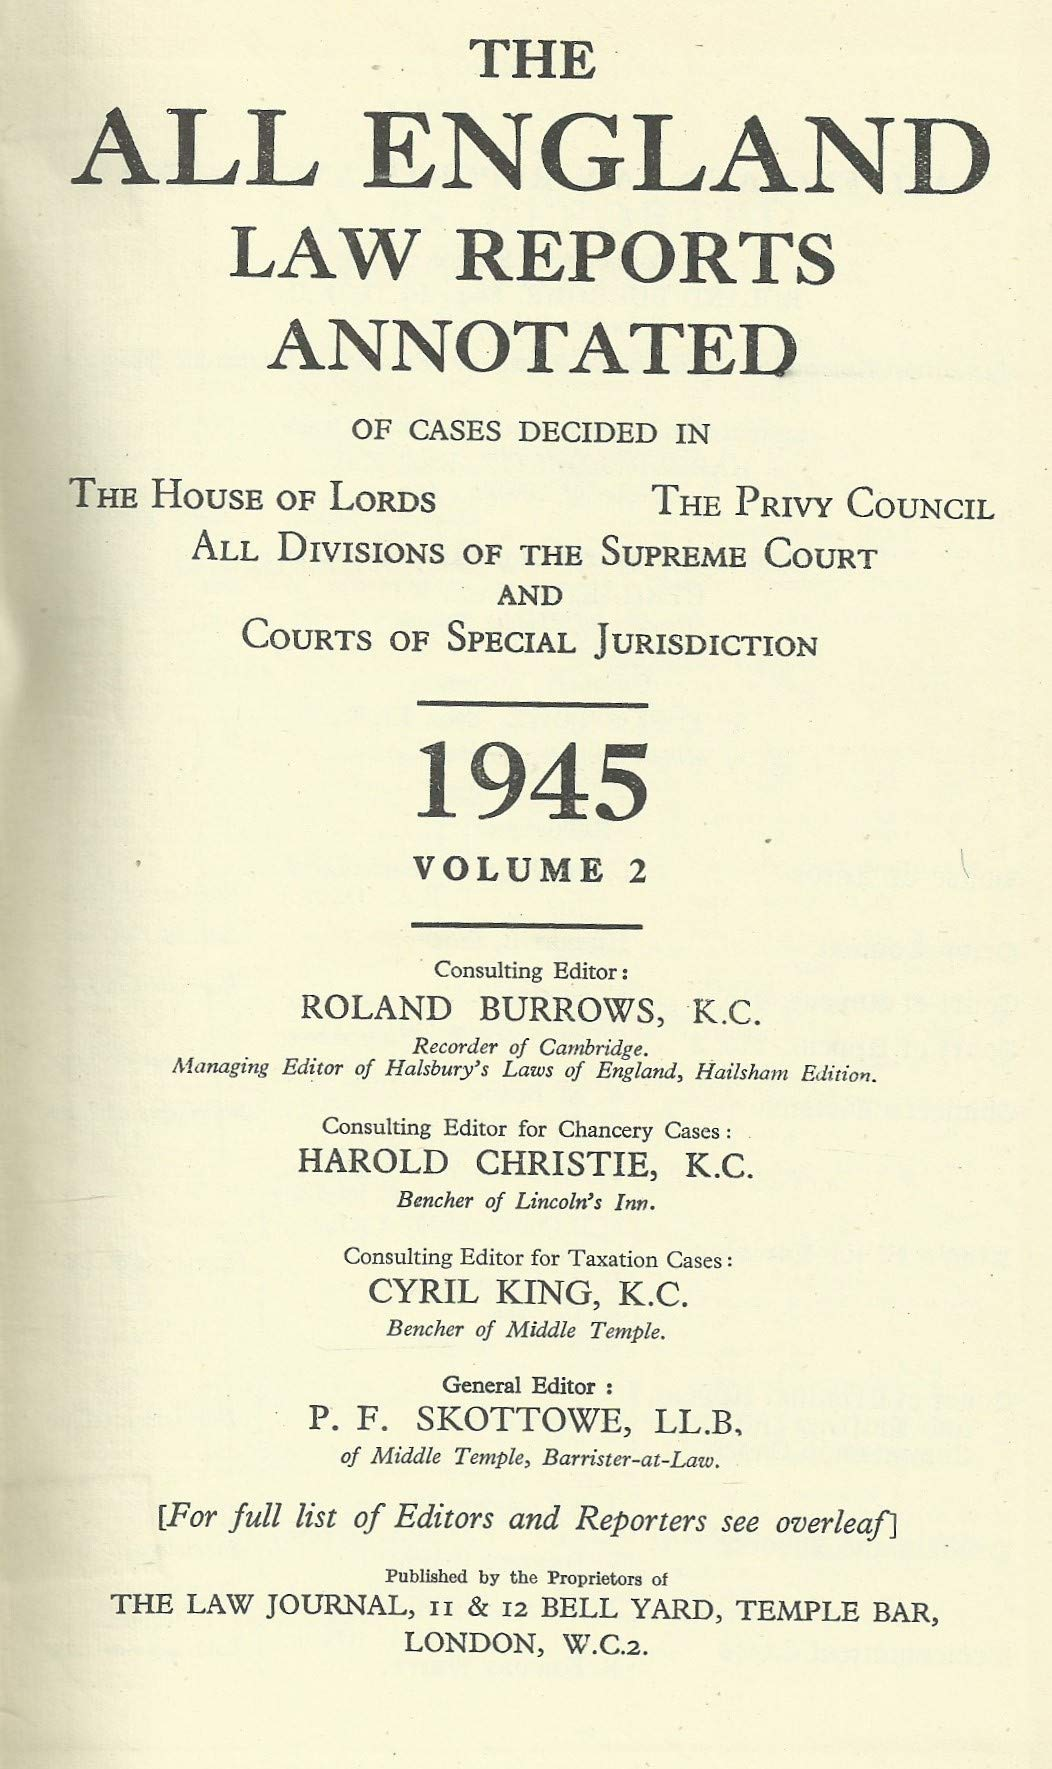 The All England Law Reports 1945, Volume 2